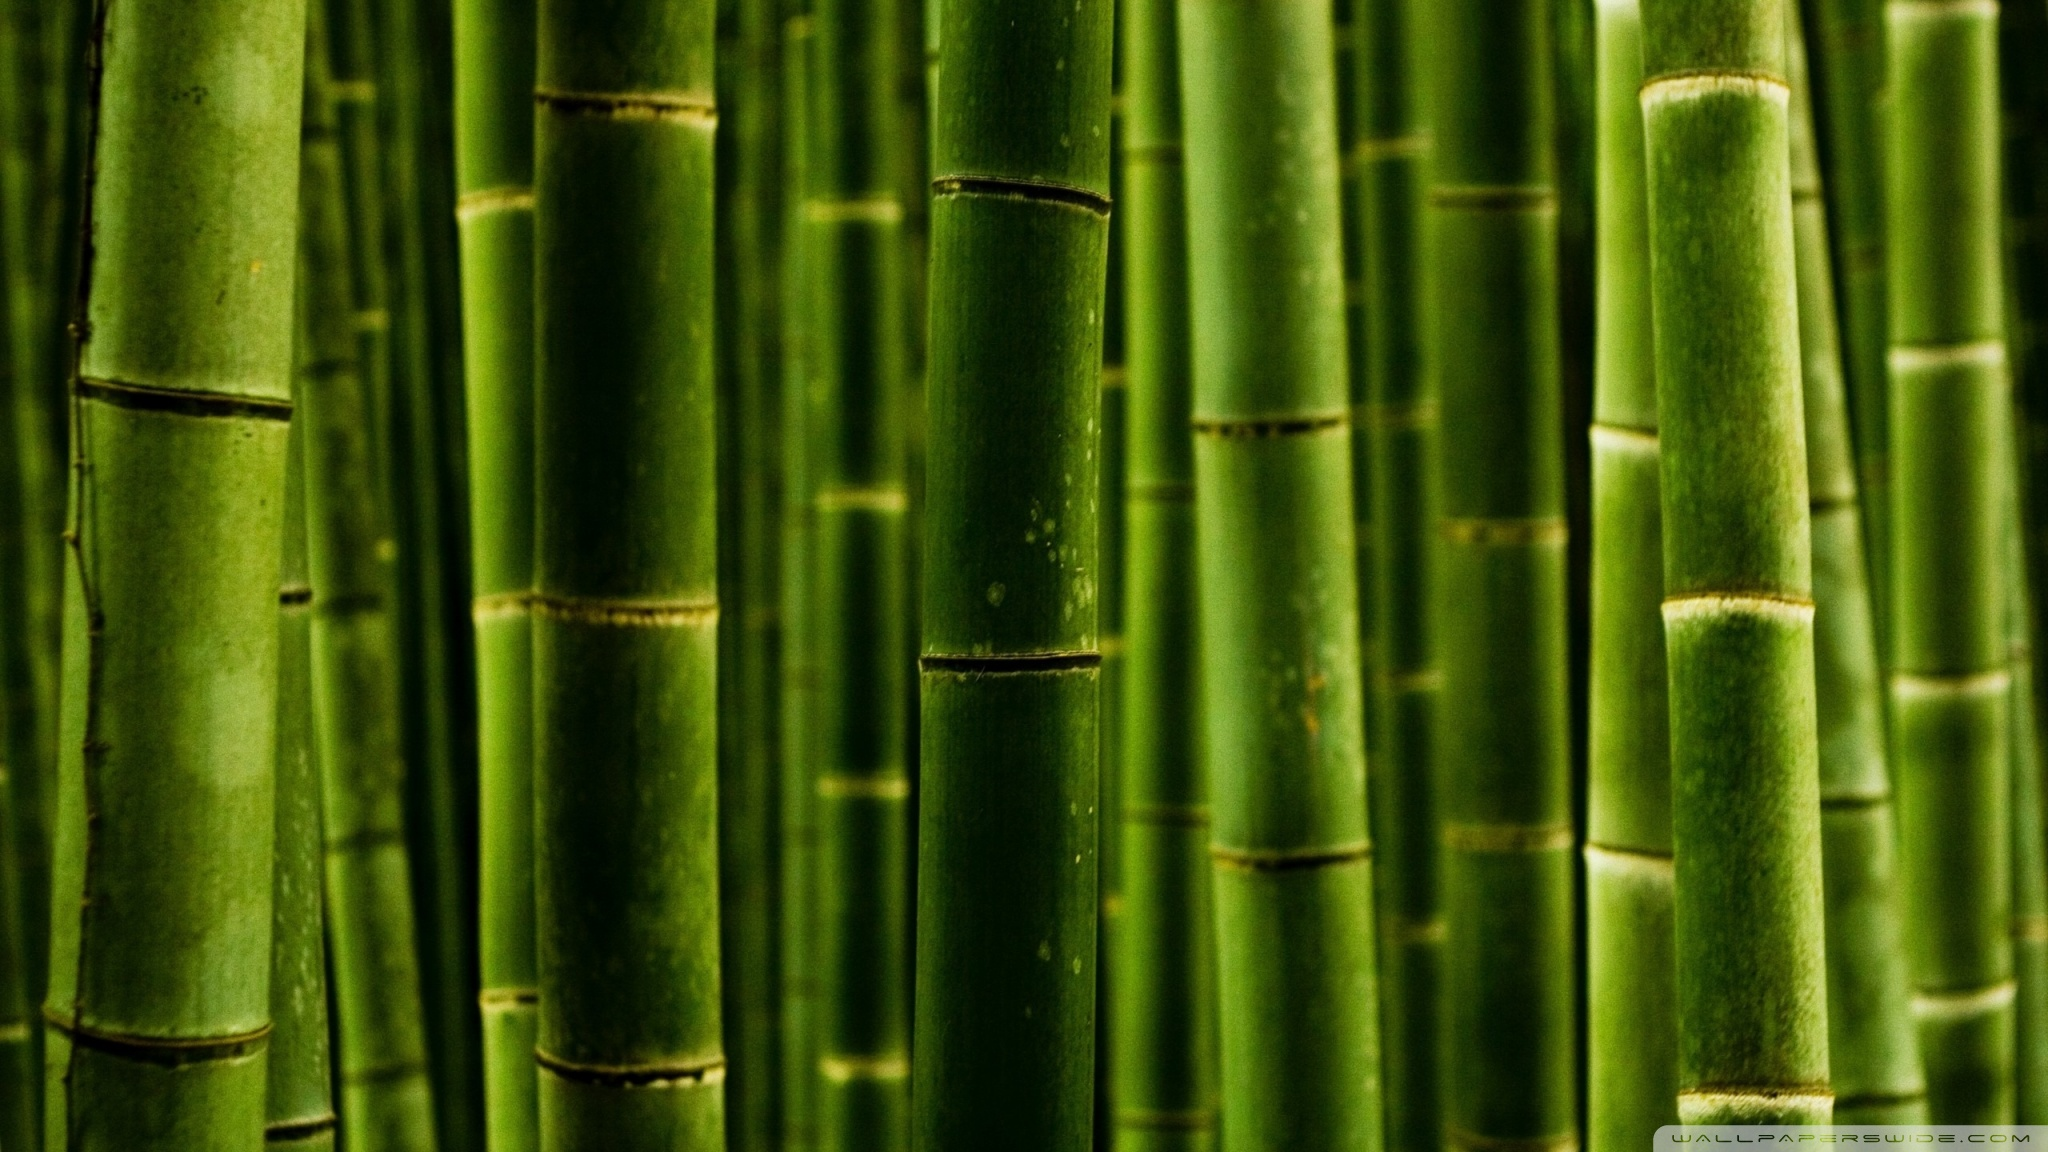 Bamboo 50362 Others